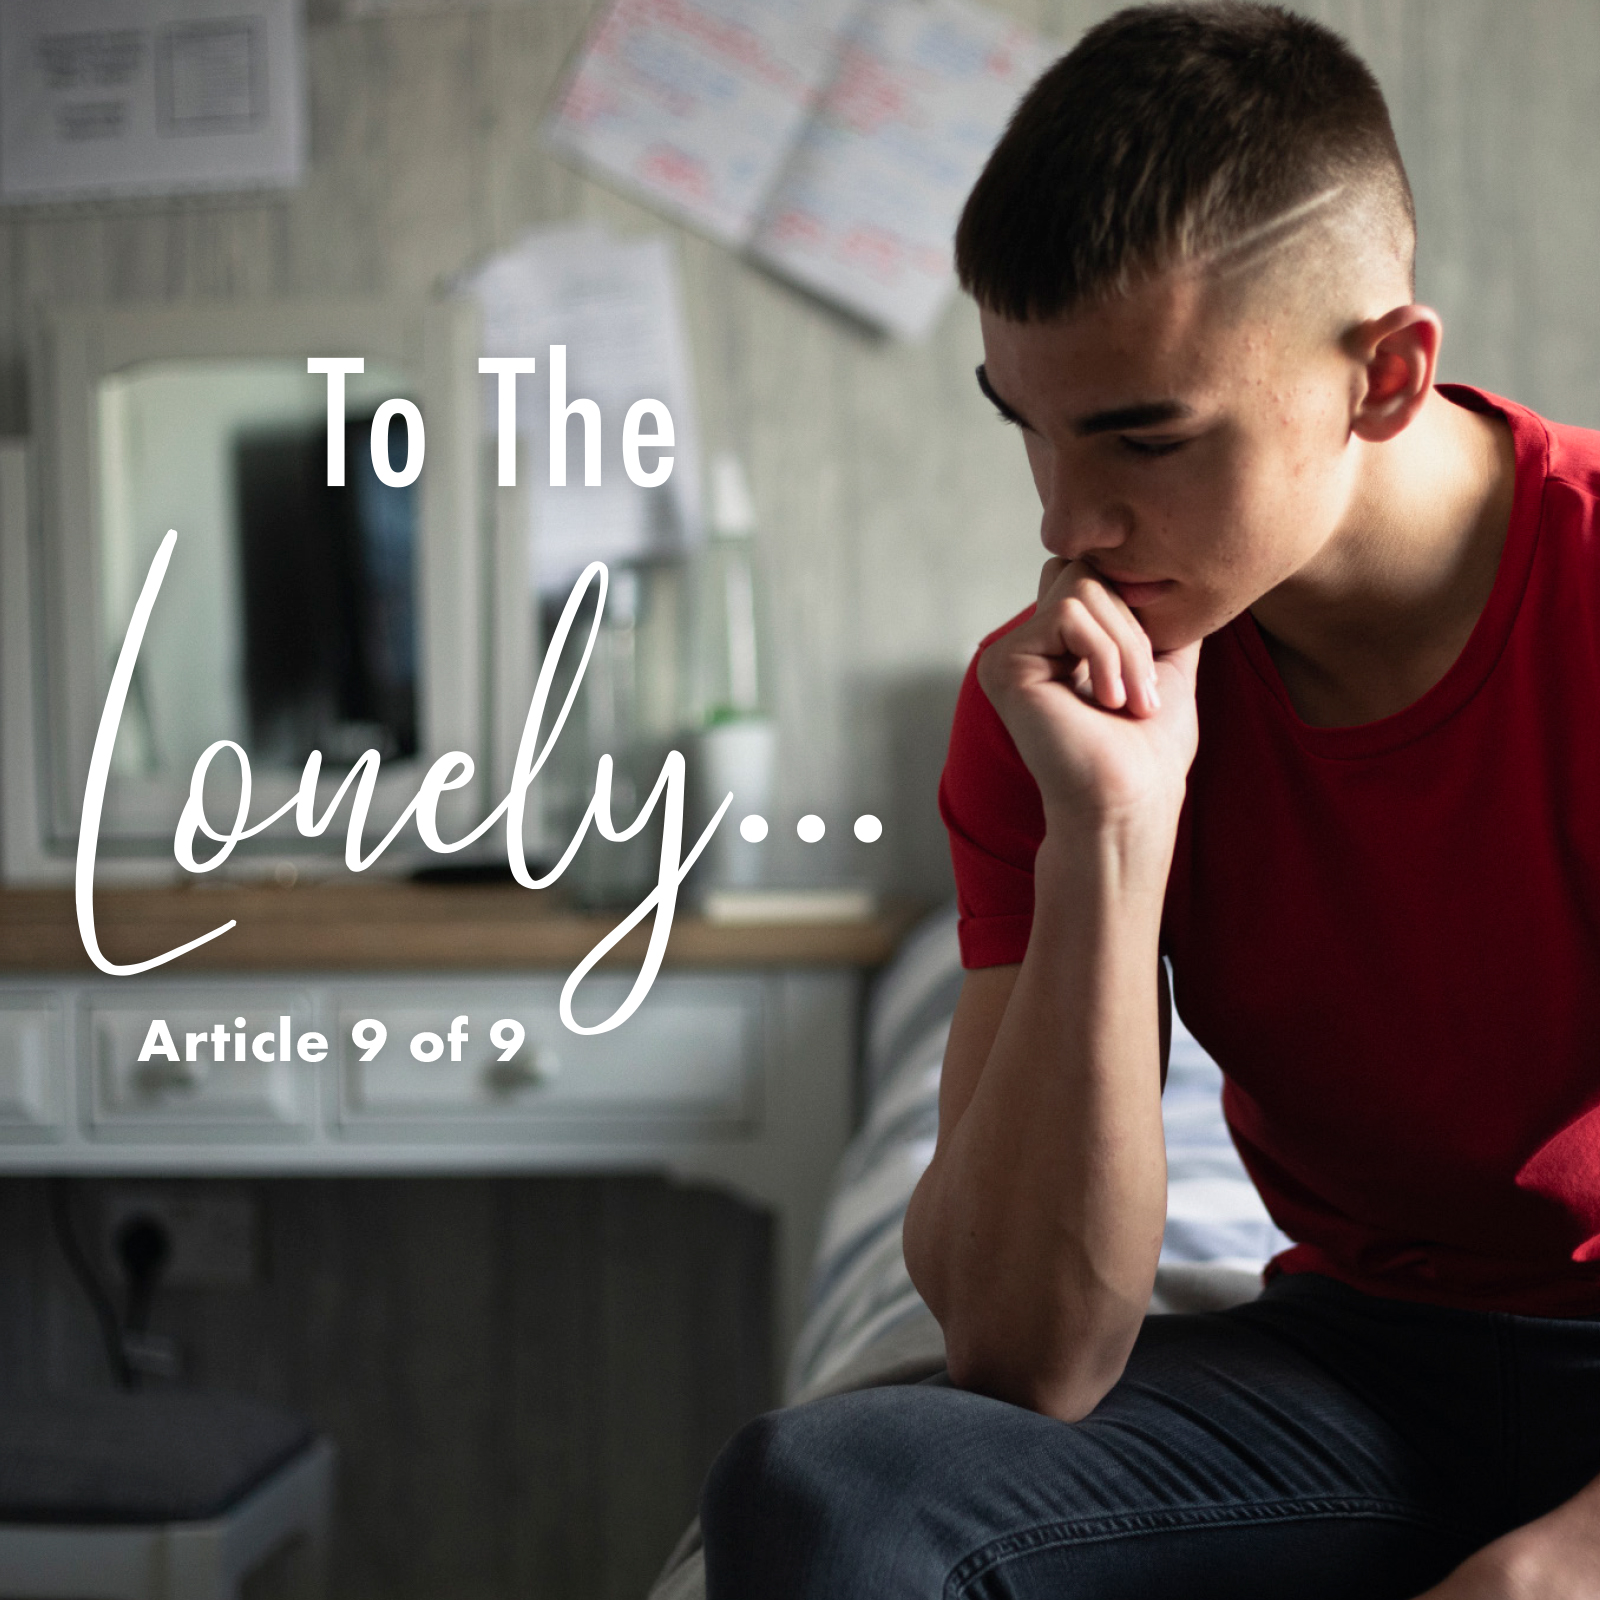 Image for 'To the Lonely…'